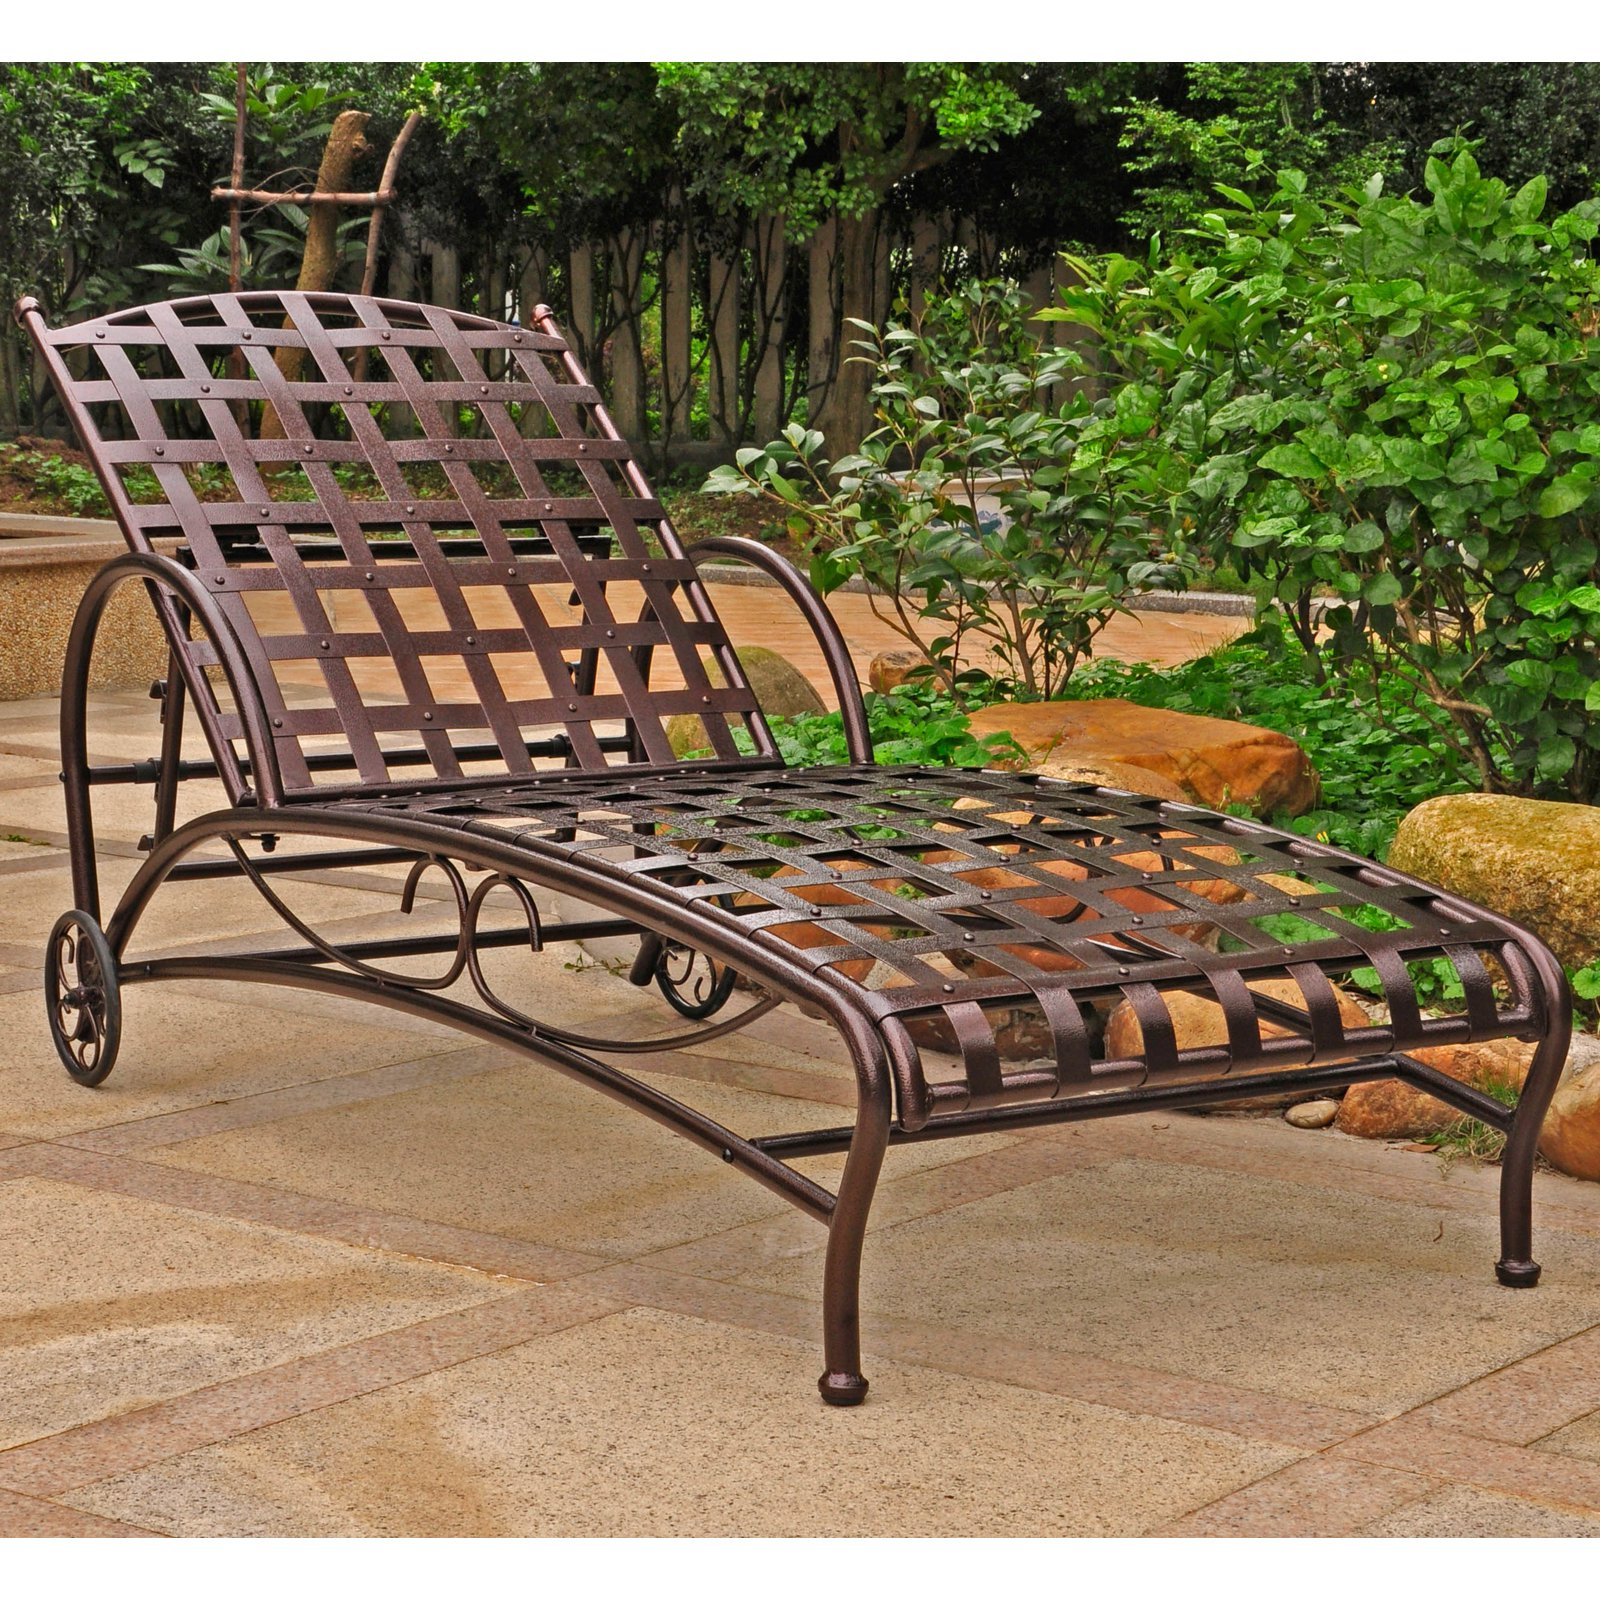 Resin Wicker Multi Position Double Patio Chaise Lounges Regarding Latest International Caravan Santa Fe Iron Multi Position Single (View 6 of 25)